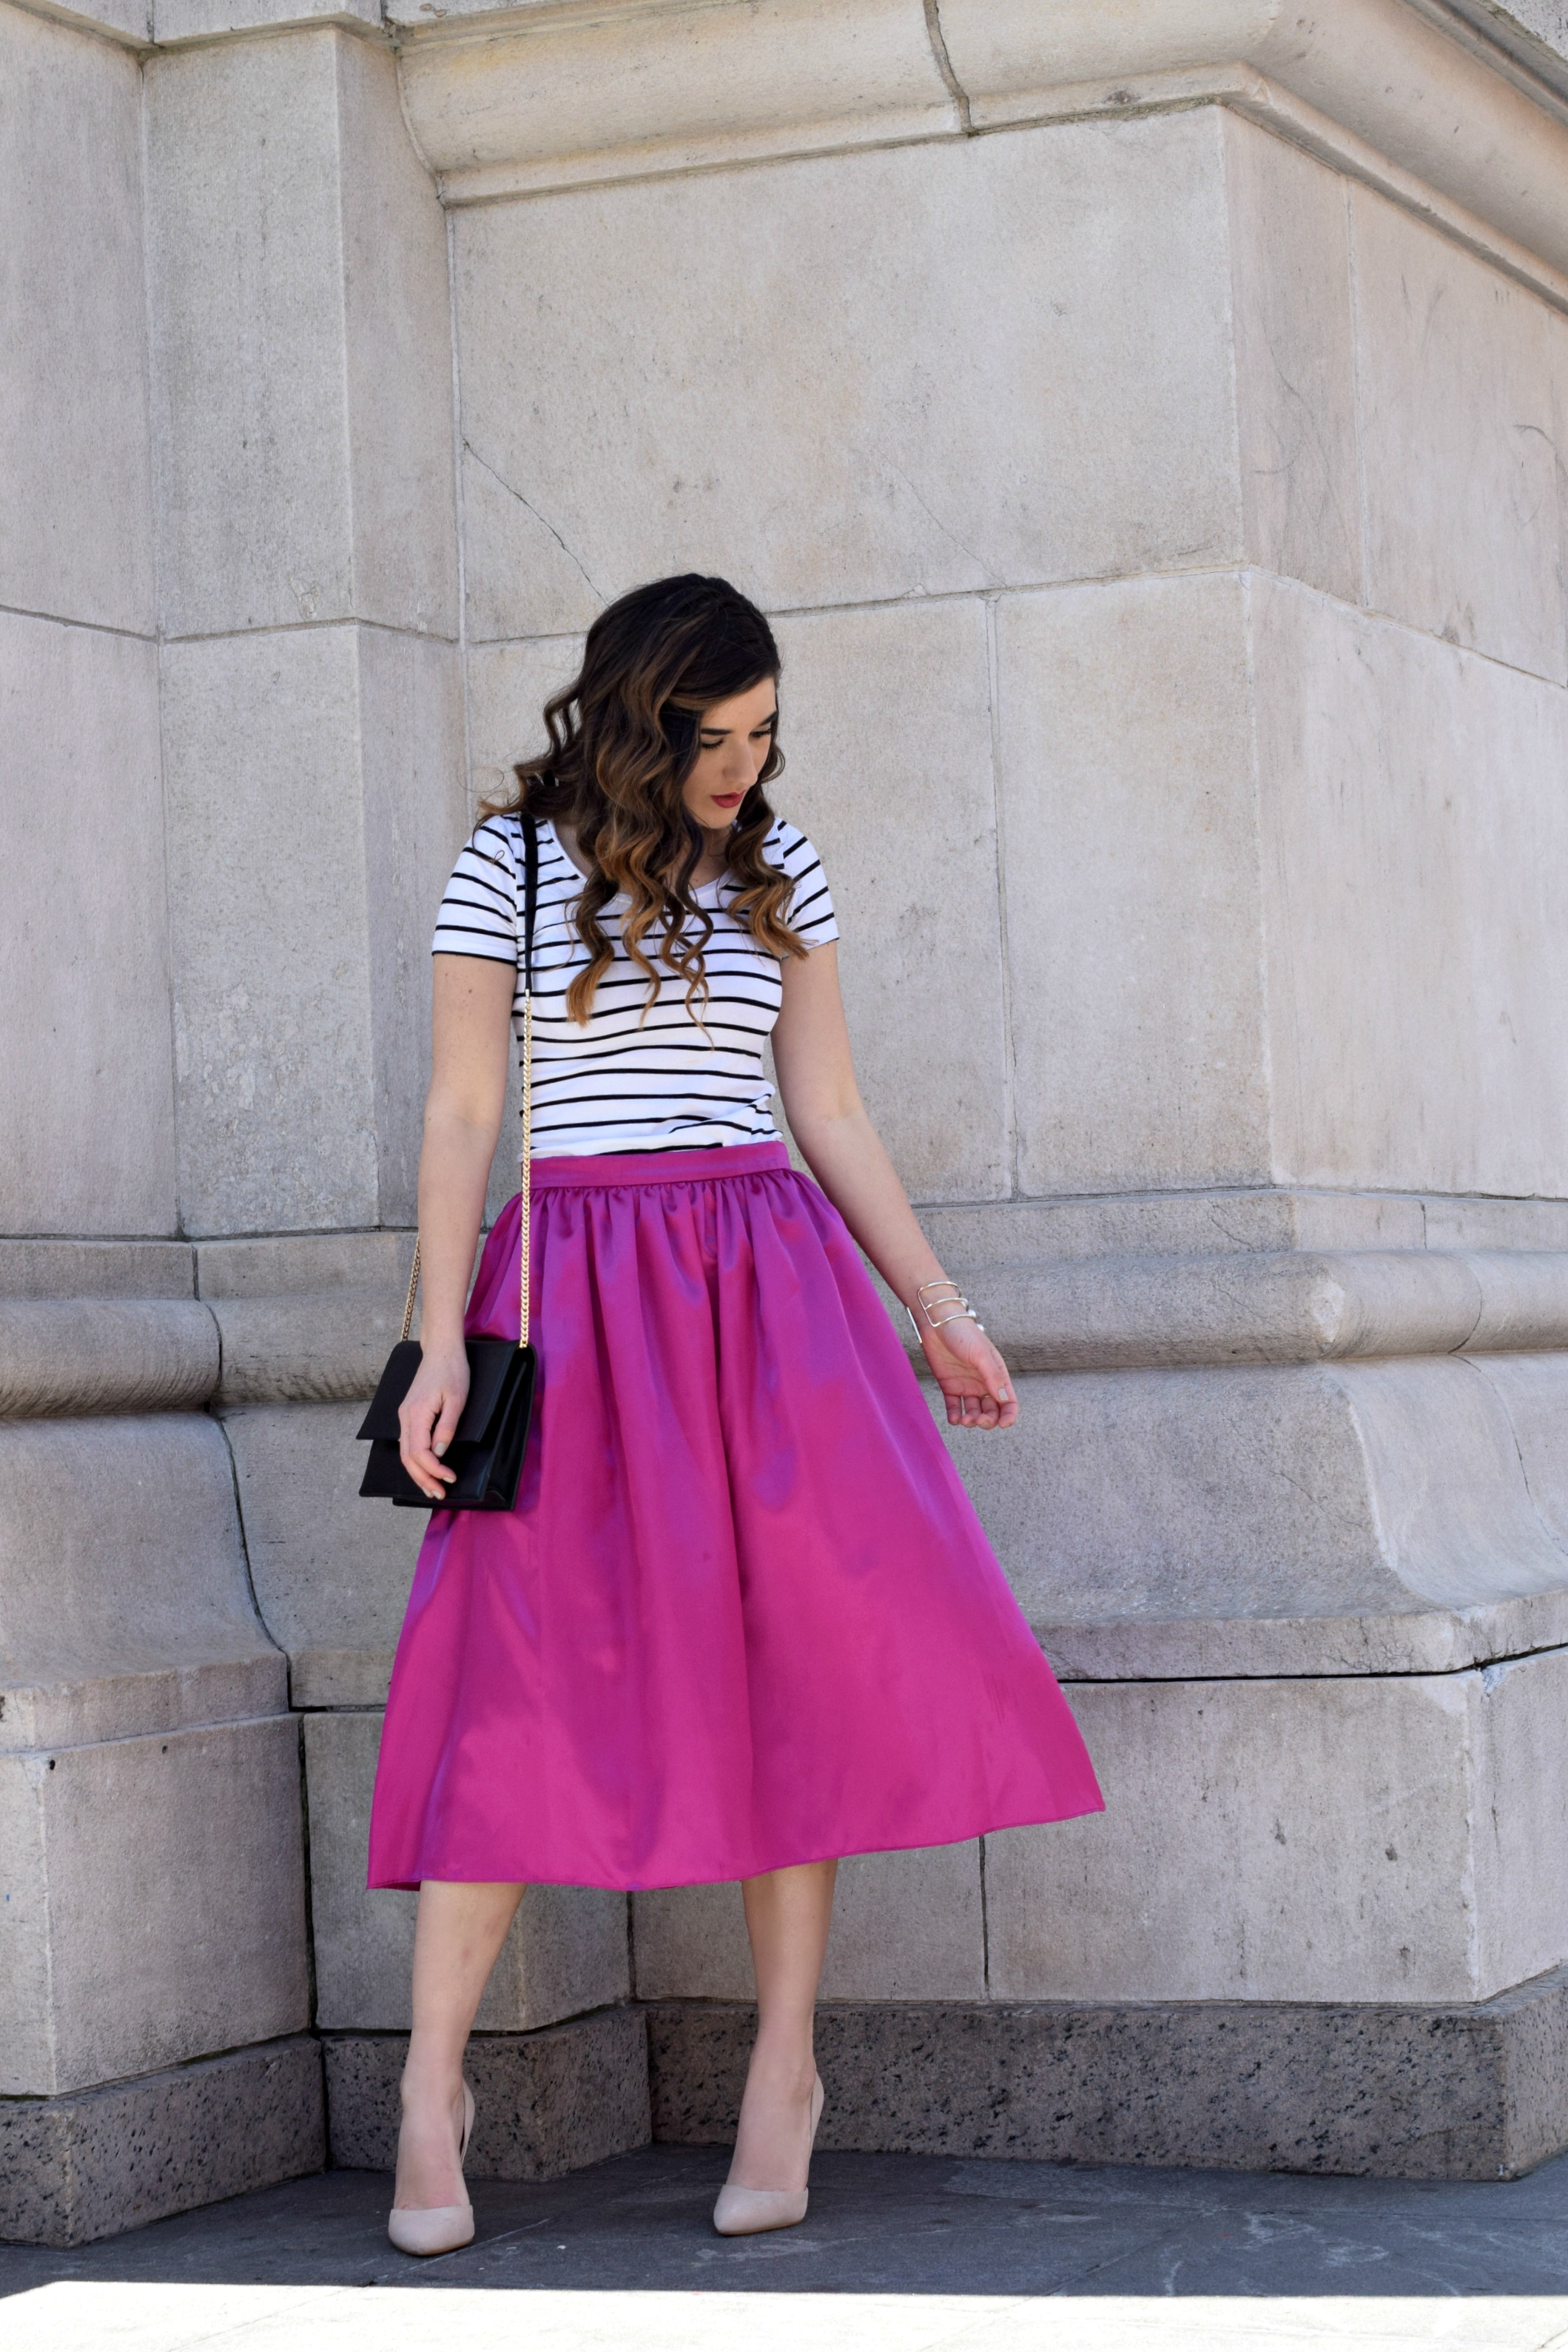 Fuchsia Party Skirt More Than Just Figleaves Louboutins & Love Fashion Blog Esther Santer NYC Street Style Blogger Outfit OOTD Midi Photoshoot Women Girl Striped Tee Ivanka Trump Black Purse Choker Bracelet Gold Jewelry Nude Heels Shoes Steve Madden.jpg